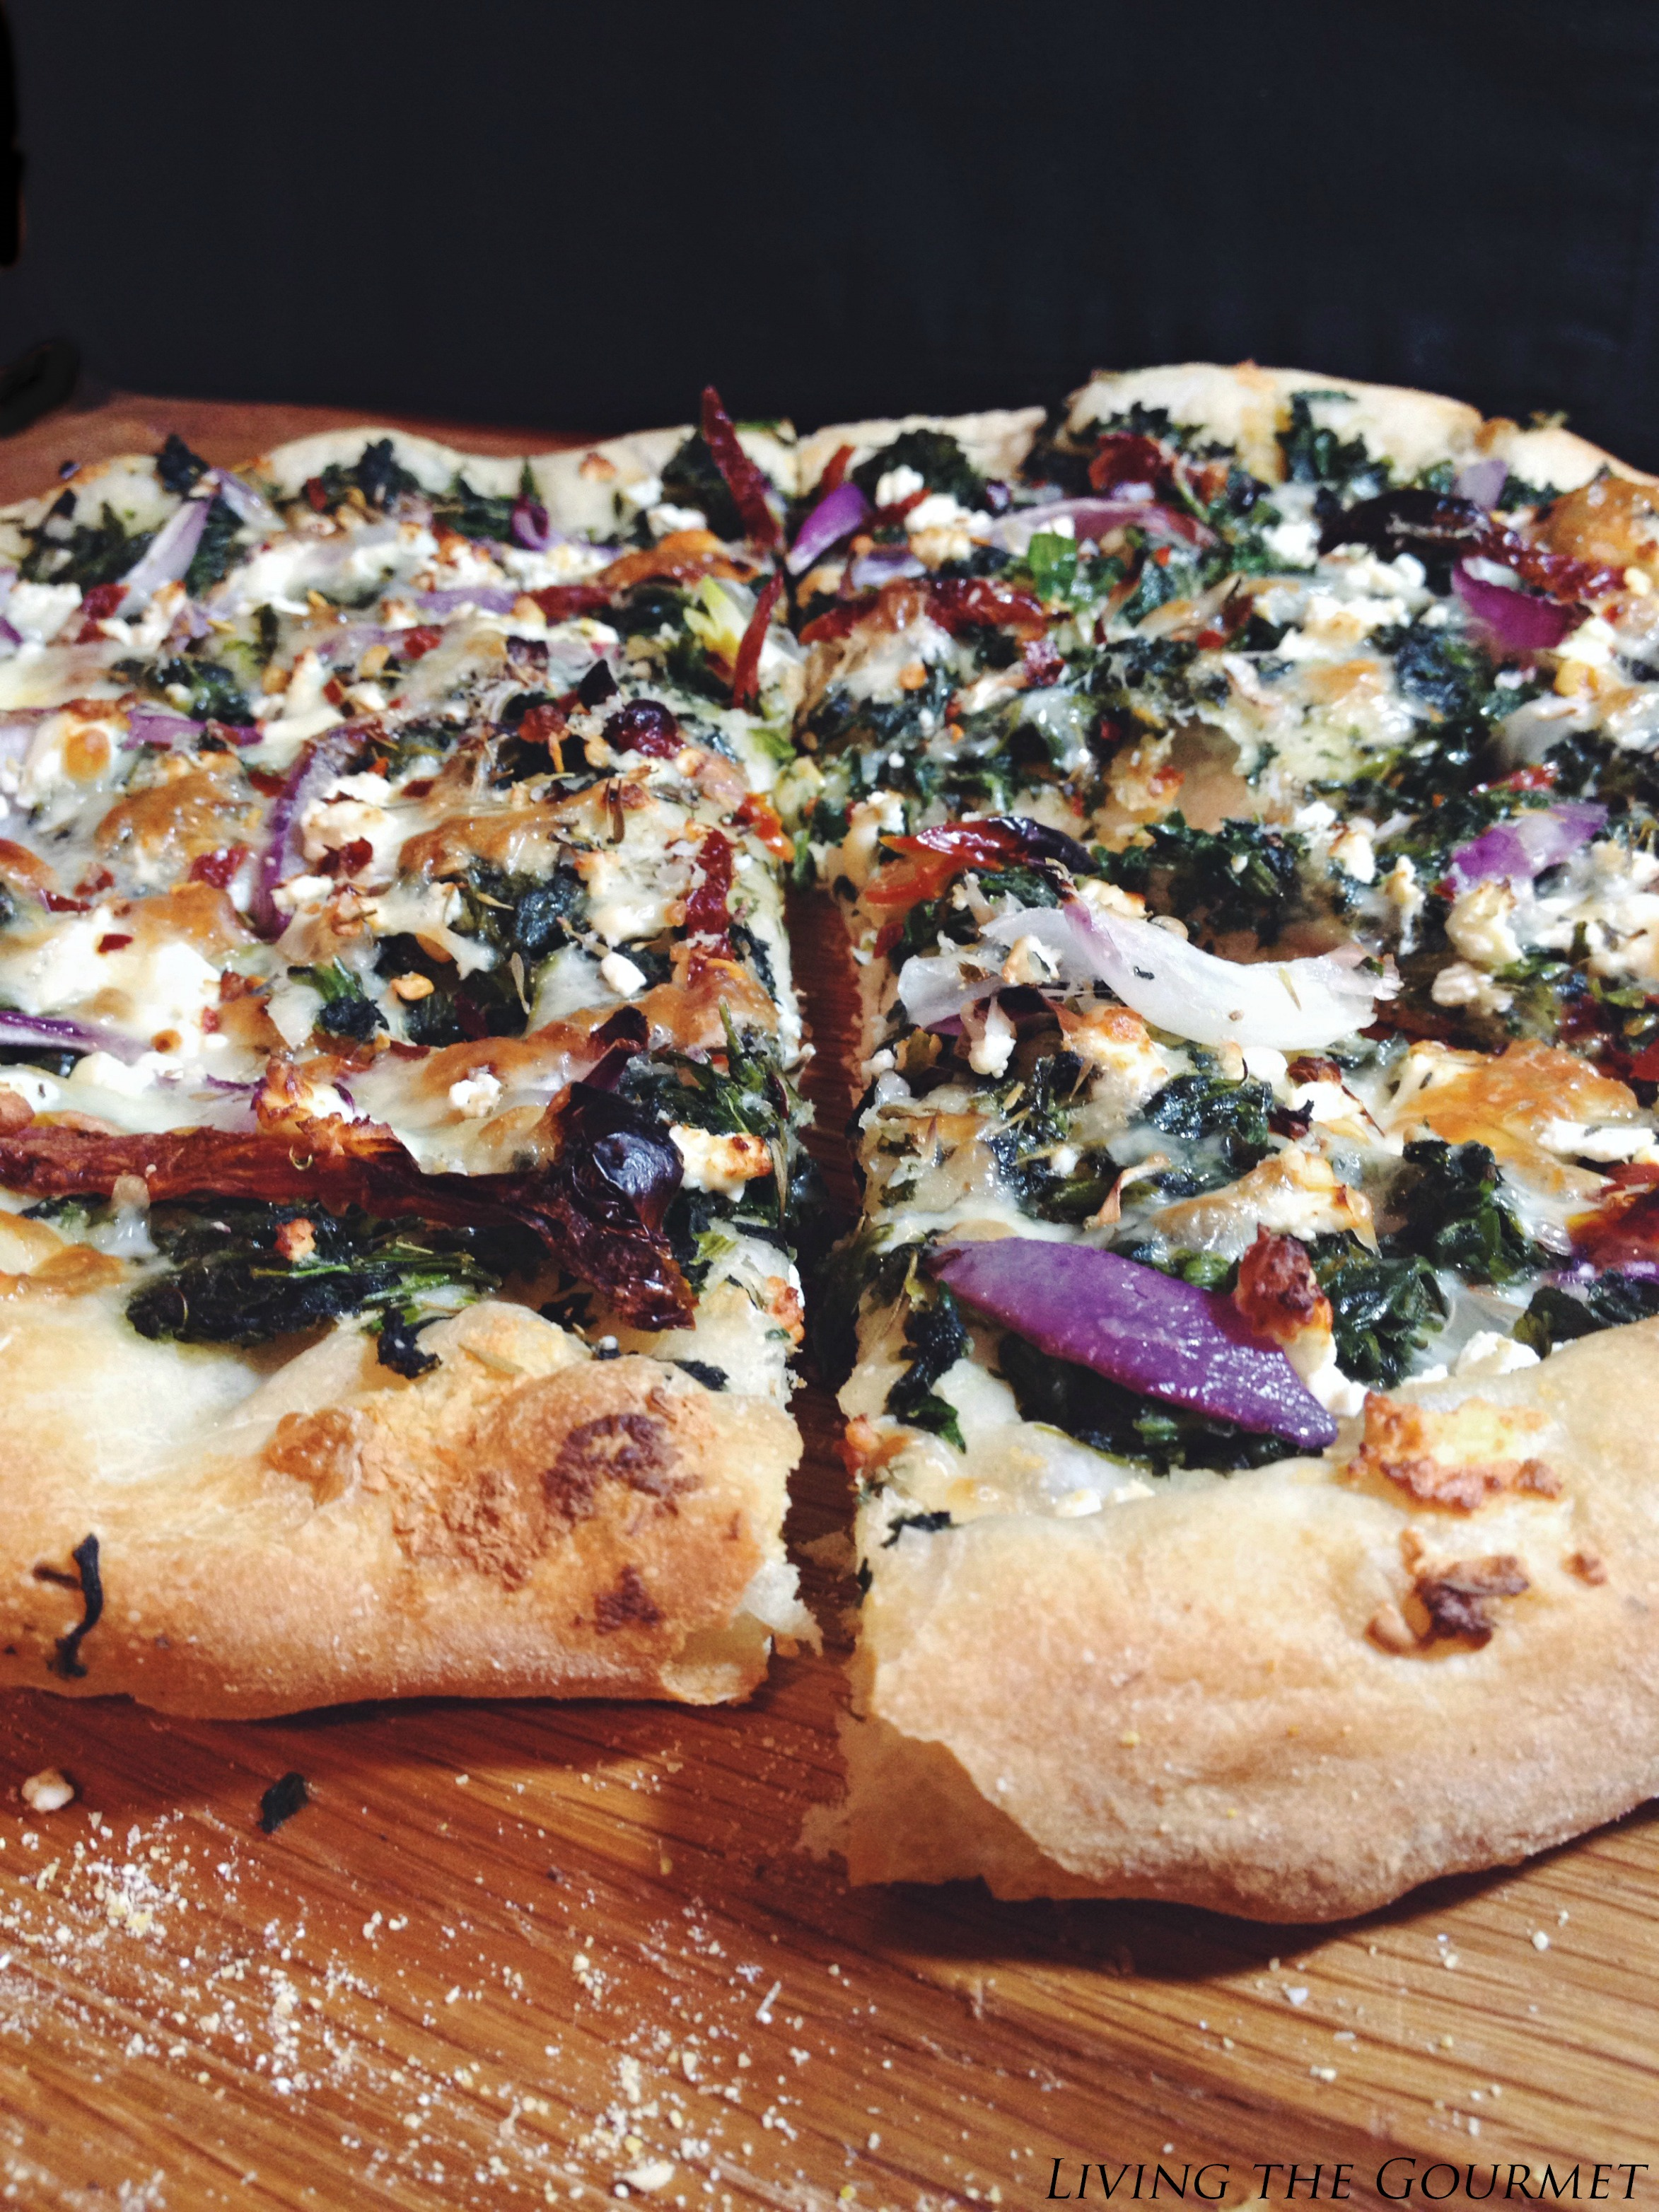 Living the Gourmet: Spinach & Feta Pizza